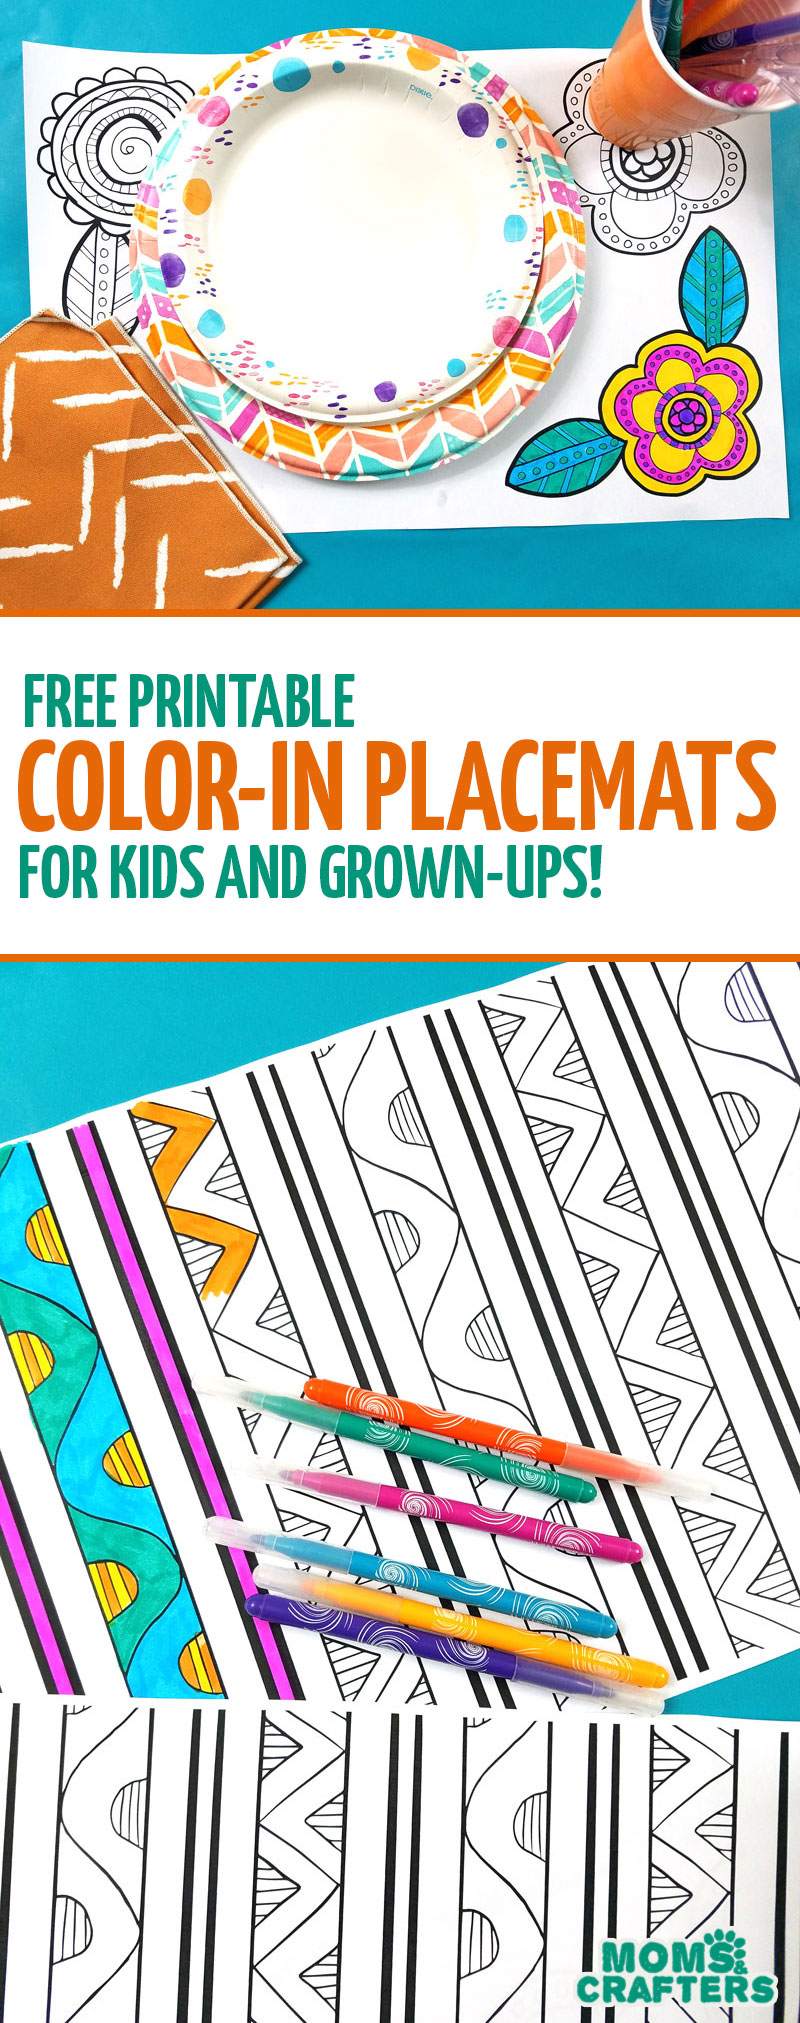 Download and print these free printable color-in placemats! These fun pattern and spring designs are perfect adult coloring pages - and simple enough fo big kids, teens, and tweens! What a fun spring or summer picnic idea! #picnic #adultcoloring #momsandcrafters